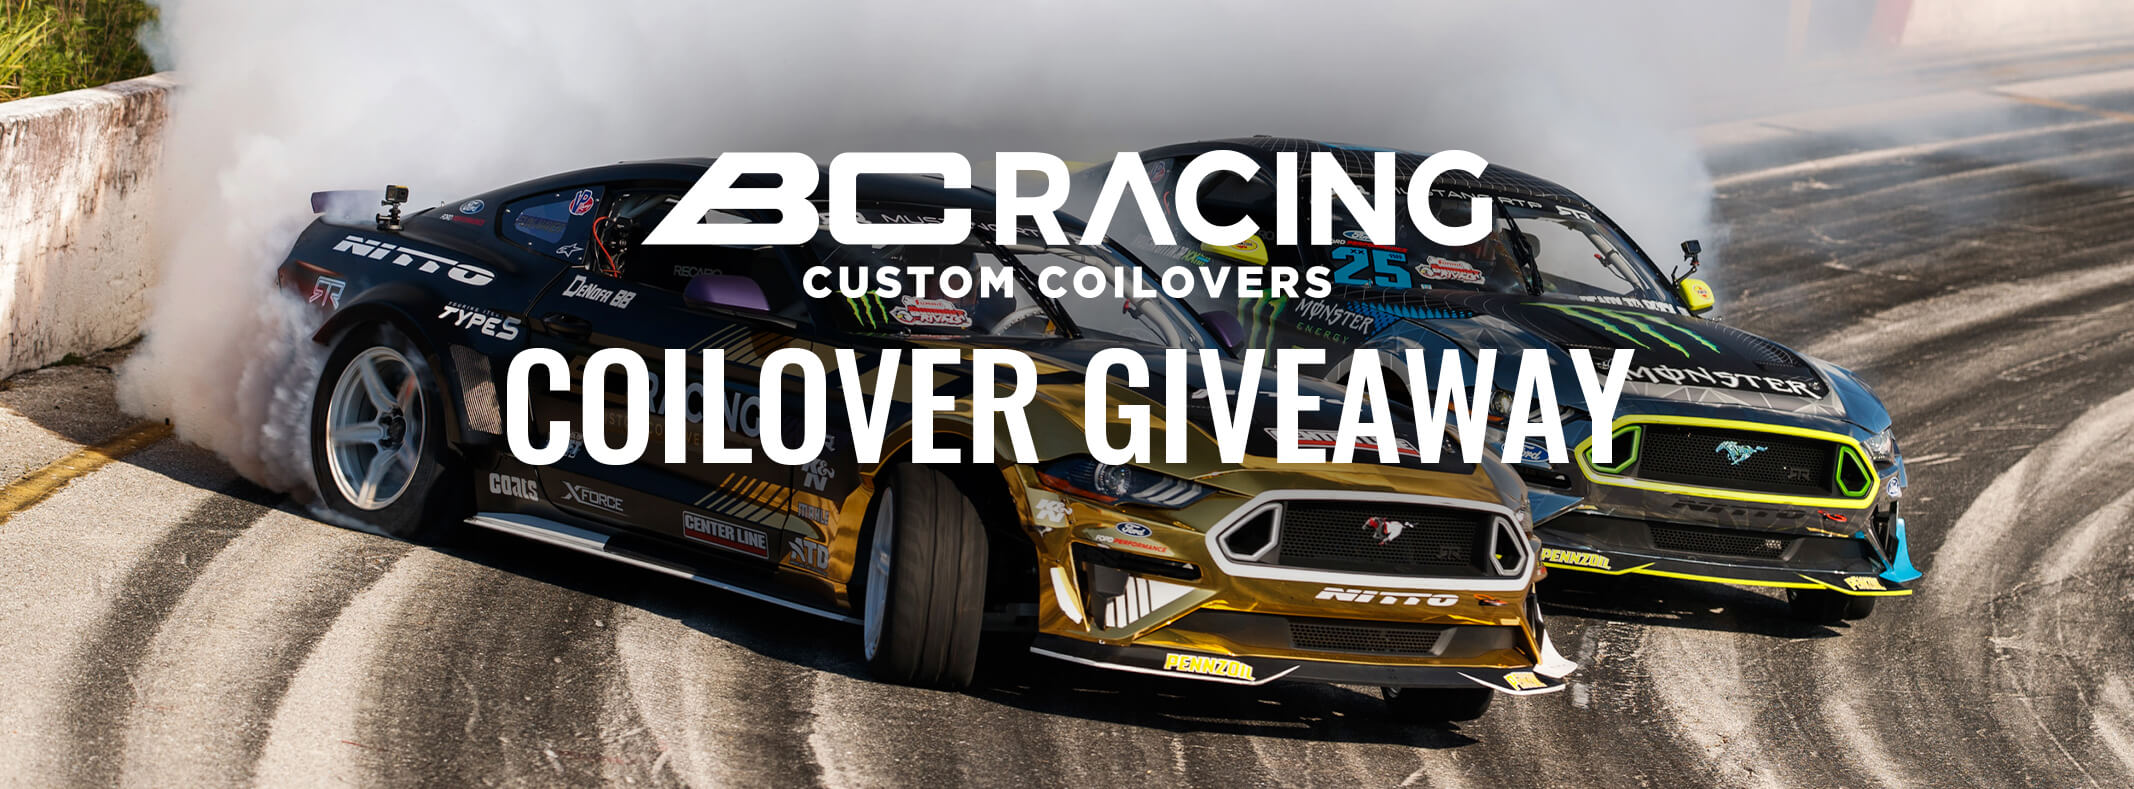 Fitment Industries & BC Racing Giveaway